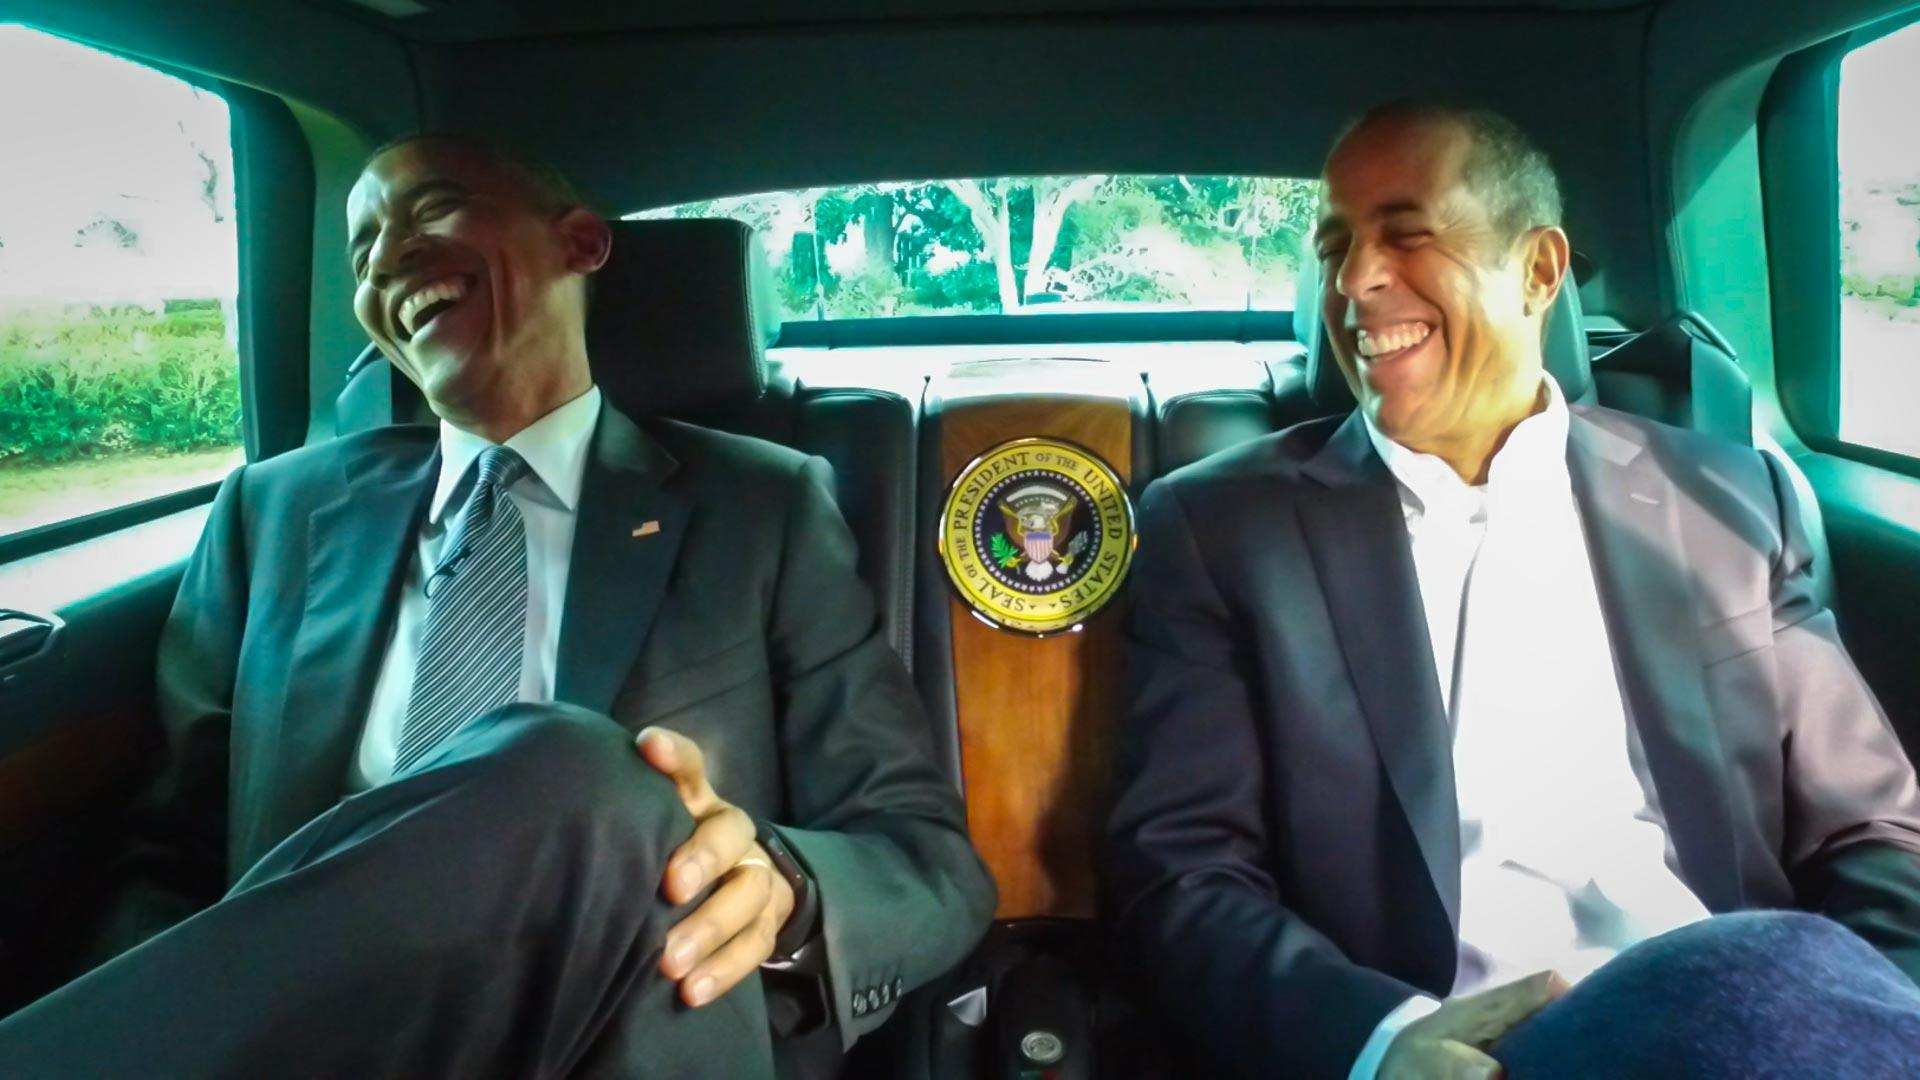 Jerry Seinfeld Ditches Crackle for Netflix, New 'Comedians in Cars Getting Coffee' Coming Late 2017